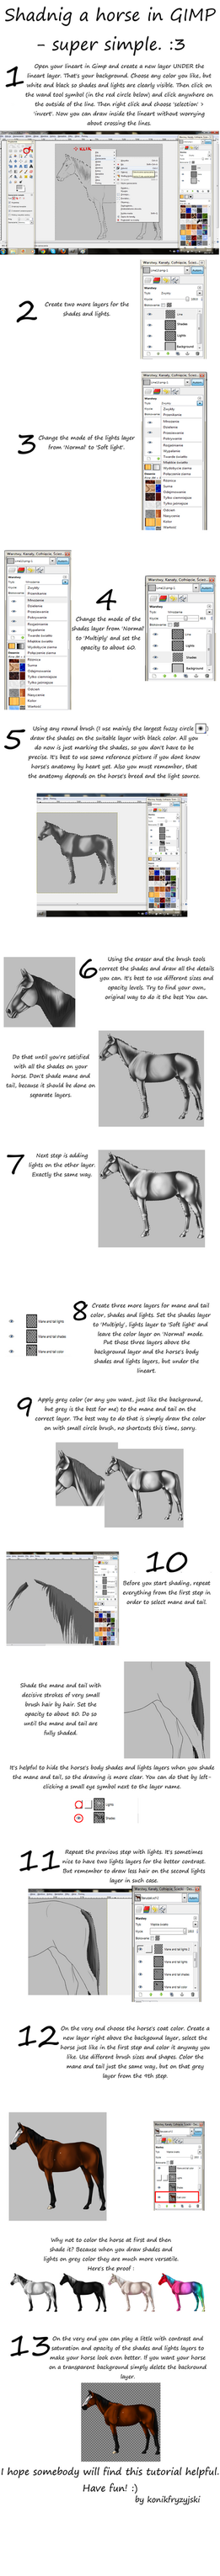 Tutorial for GIMP users (how to shade a horse) ENG by konikfryzyjski